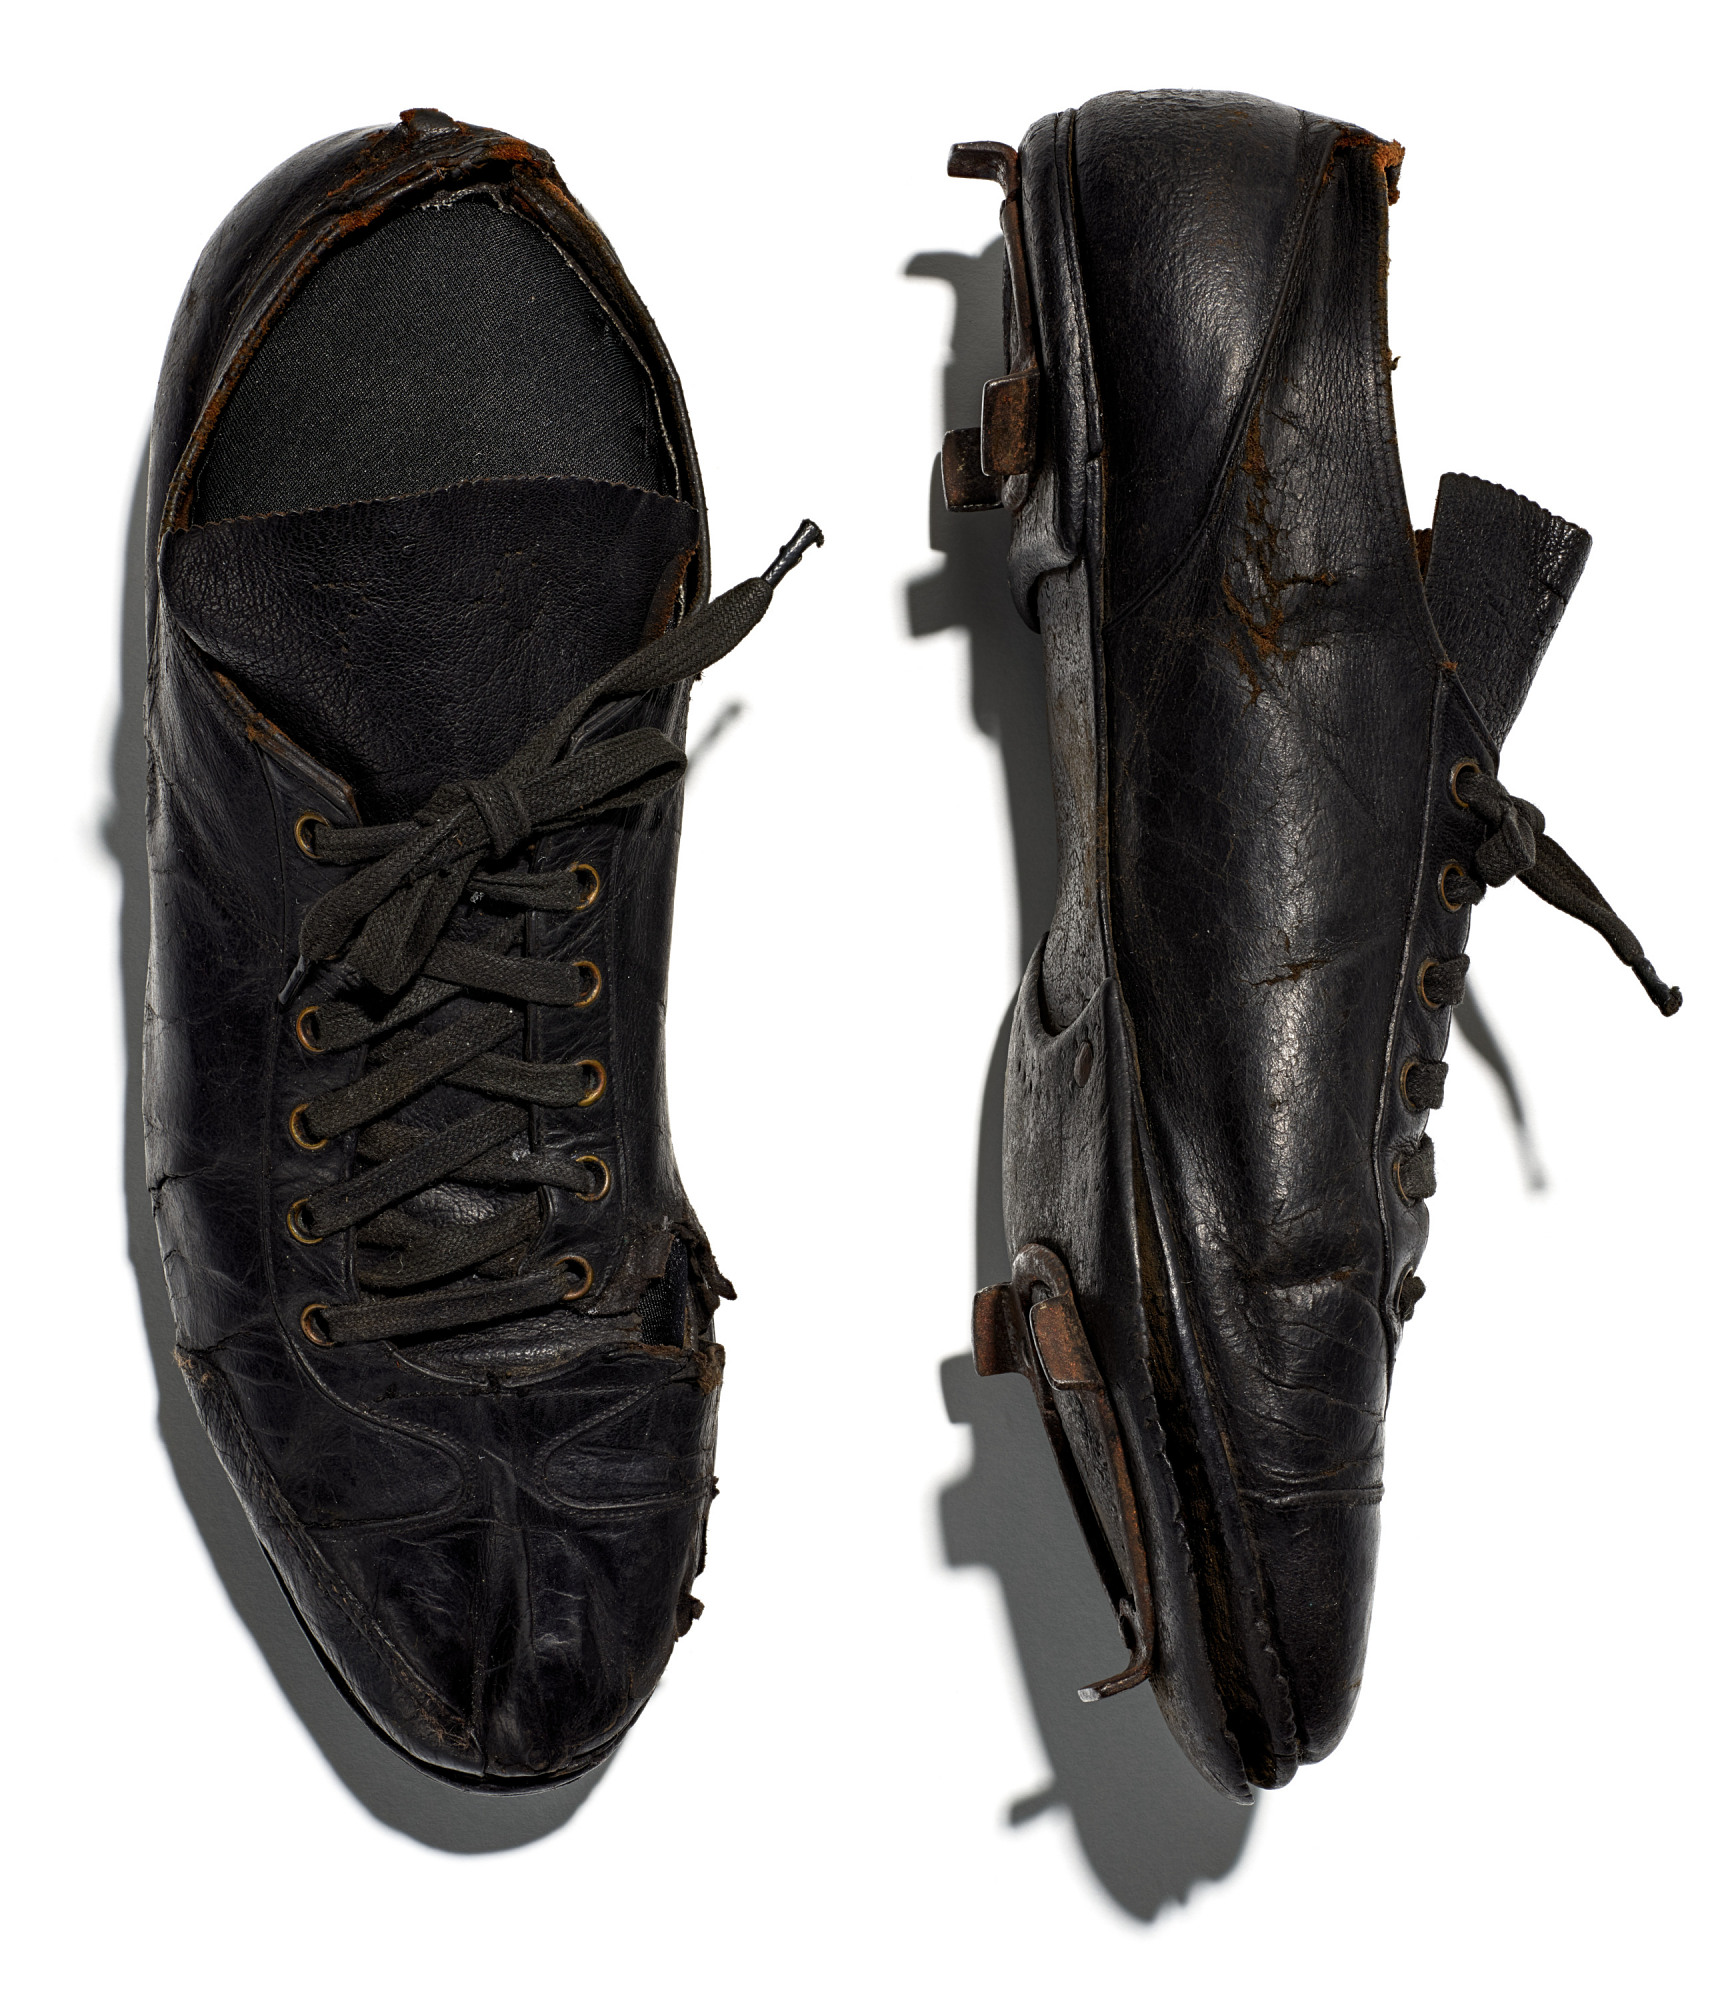 images for Baseball shoes worn by Jimmie Crutchfield of the Pittsburgh Crawfords